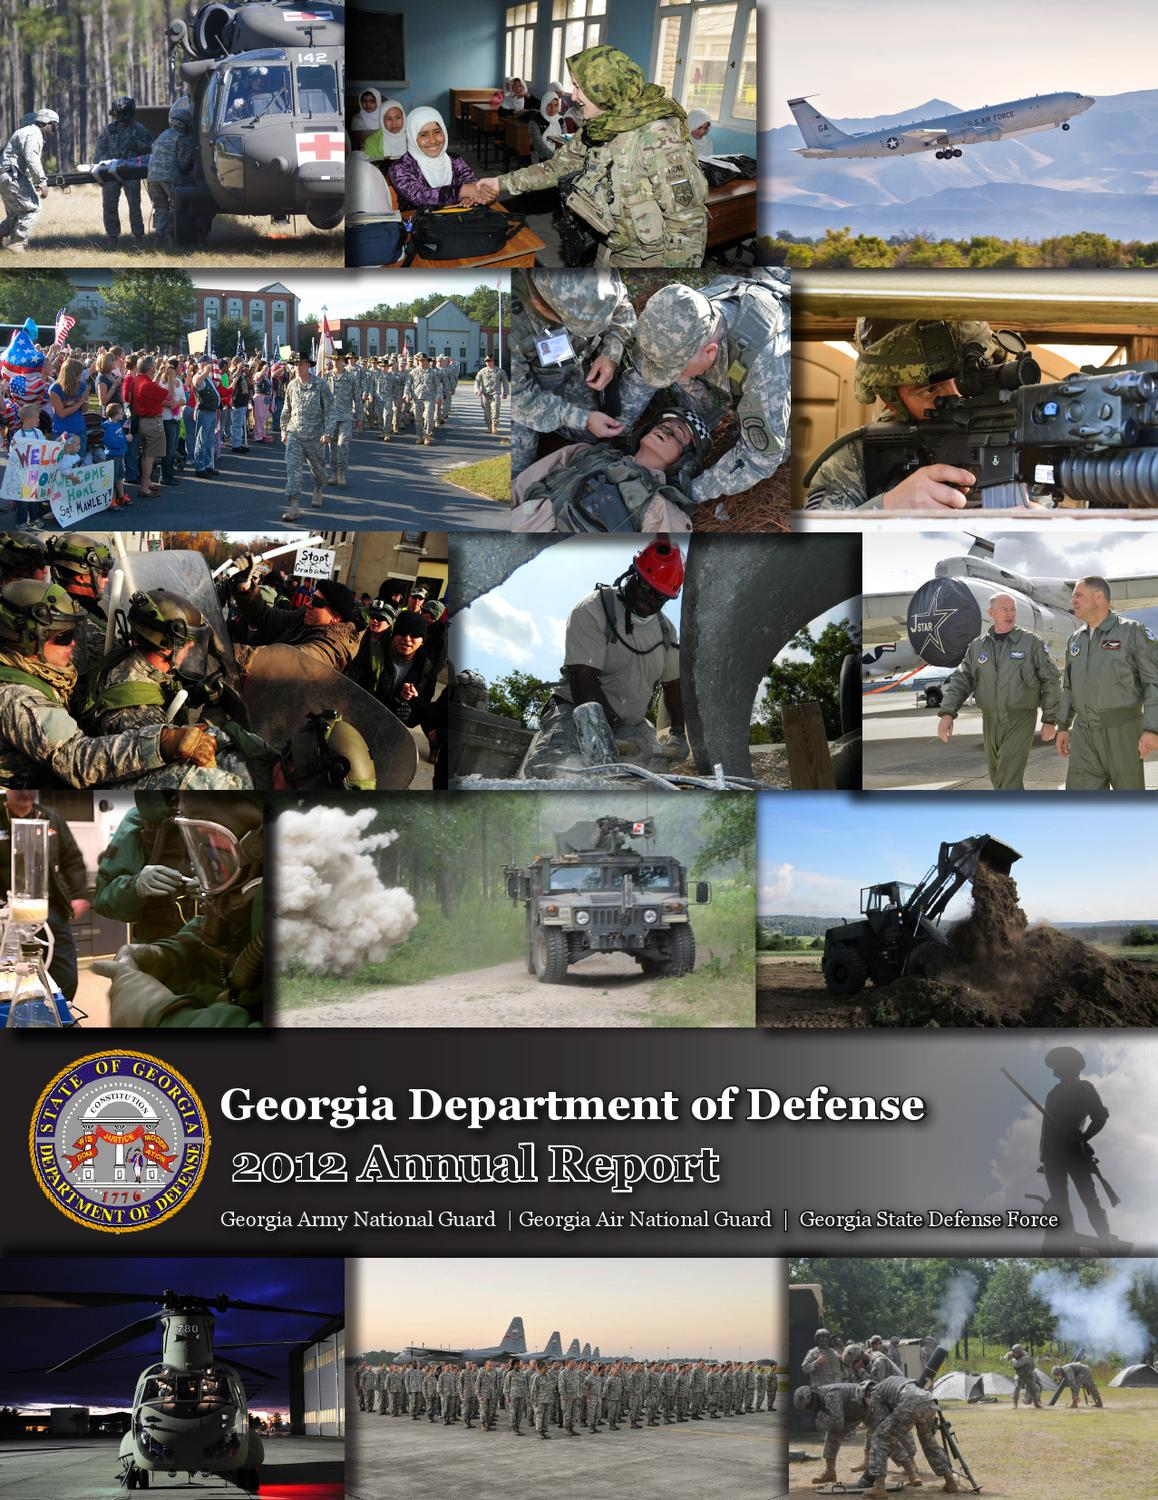 georgia department of defense 2012 annual report by georgia national guard issuu. Black Bedroom Furniture Sets. Home Design Ideas